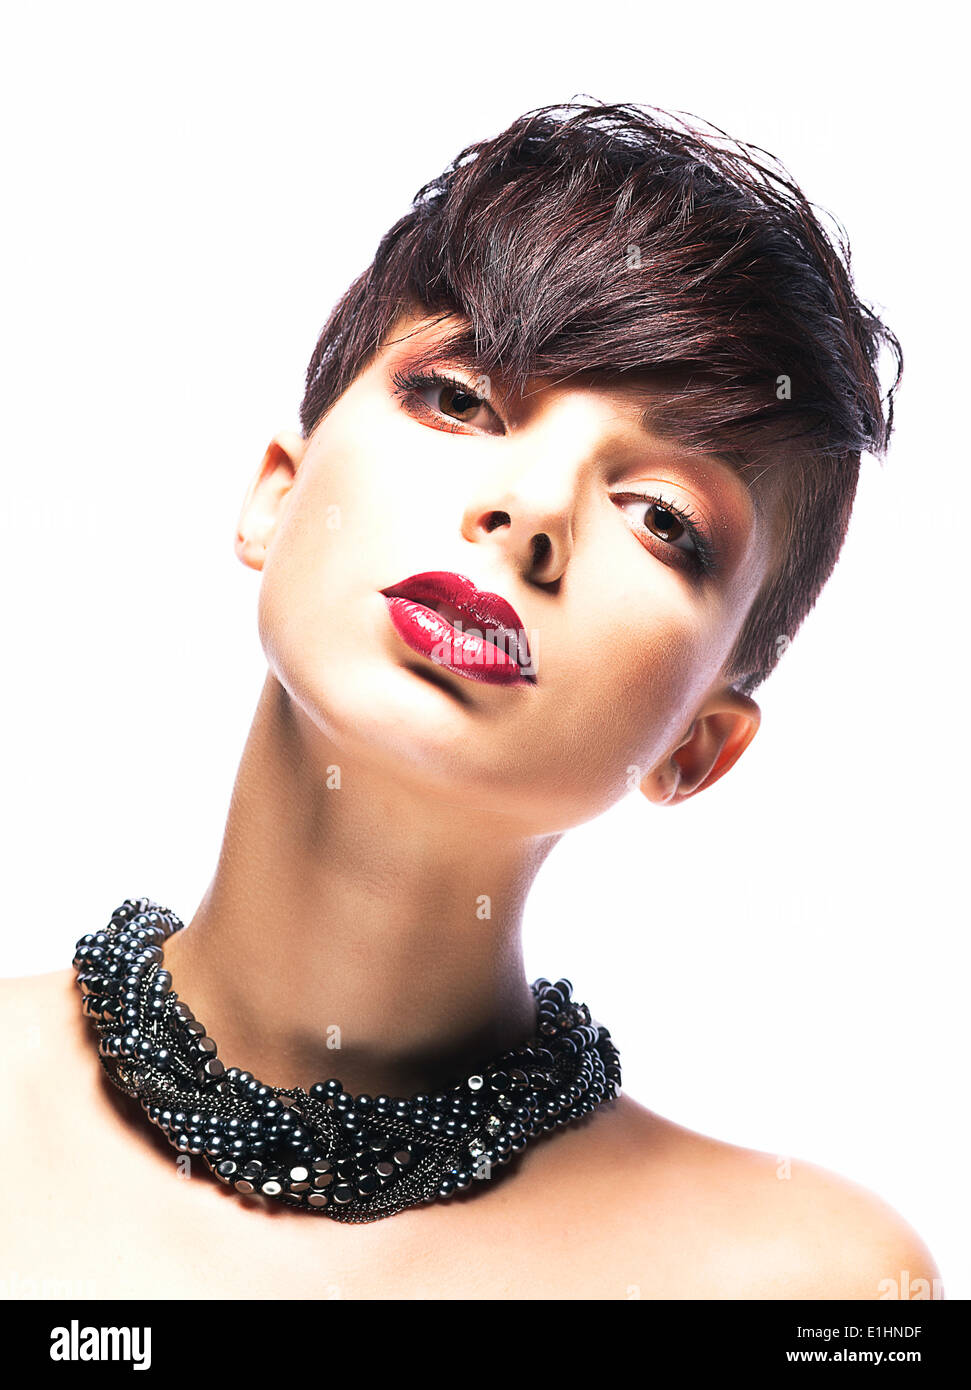 Portrait of Imposing Elegant Woman Brunette with Short Hair. Arrogance & Futurism - Stock Image